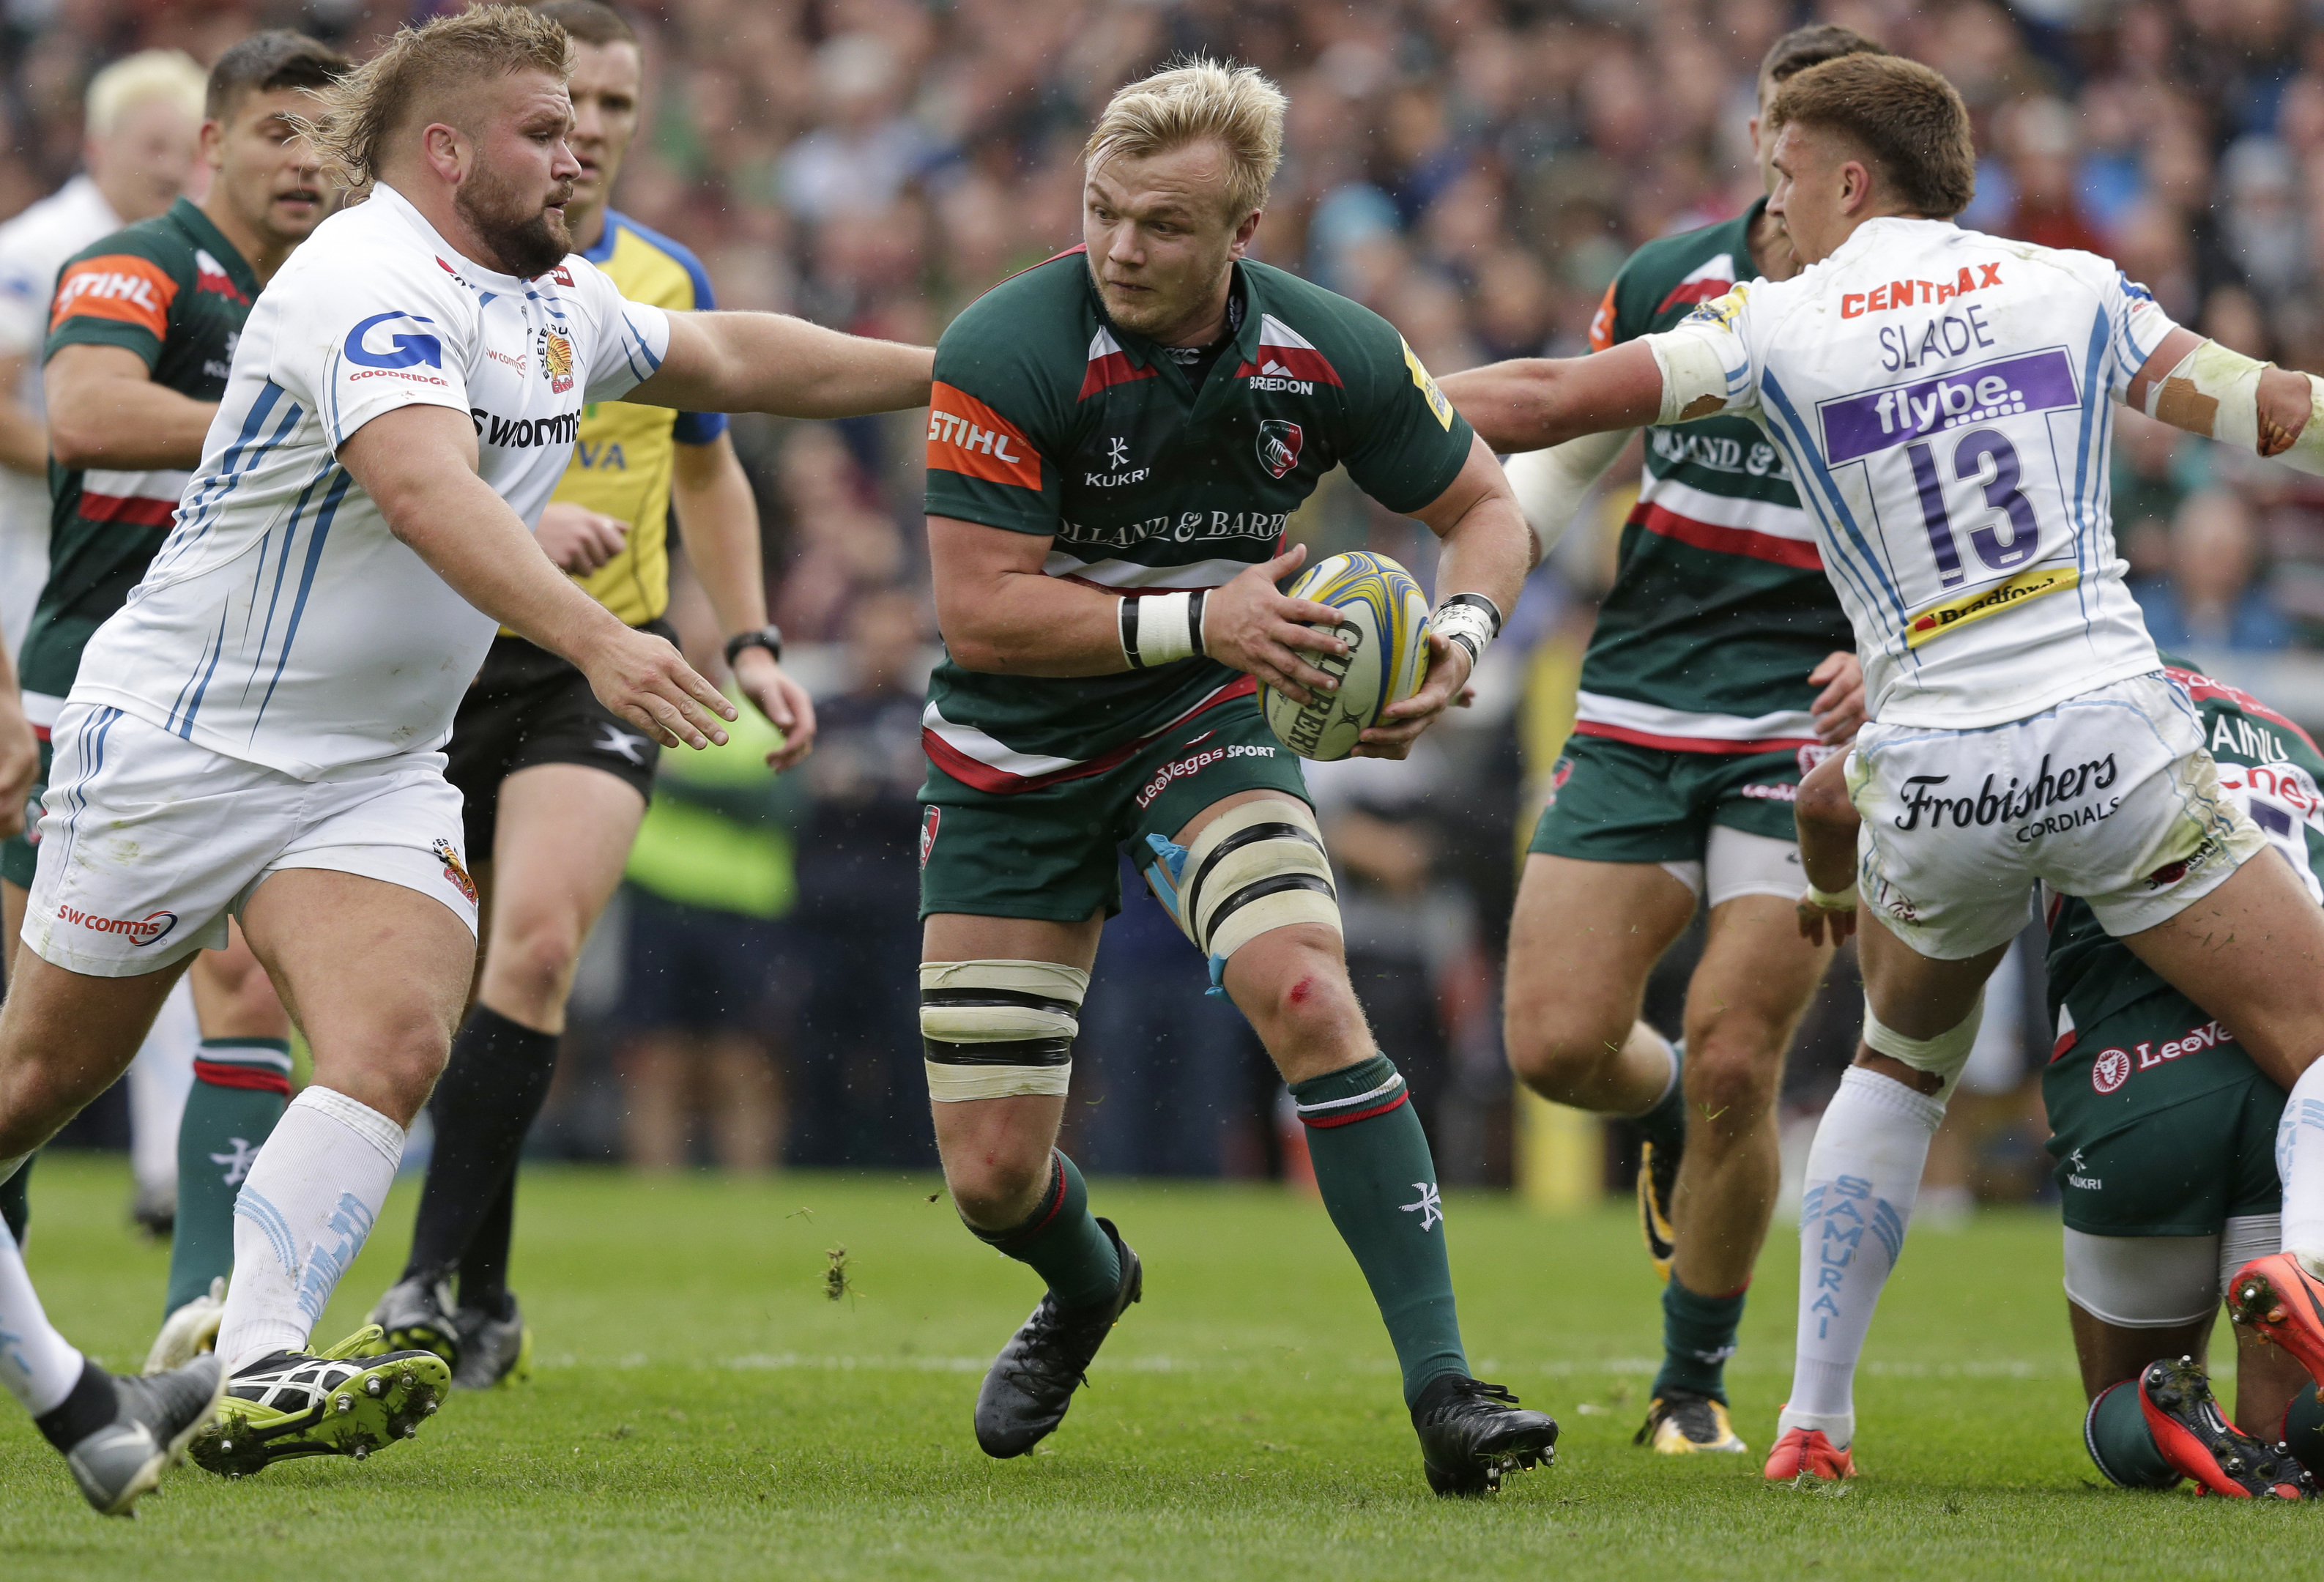 Luke Hamilton of Leicester Tigers was capped at U-20 level for Wales but has committed to Scotland.